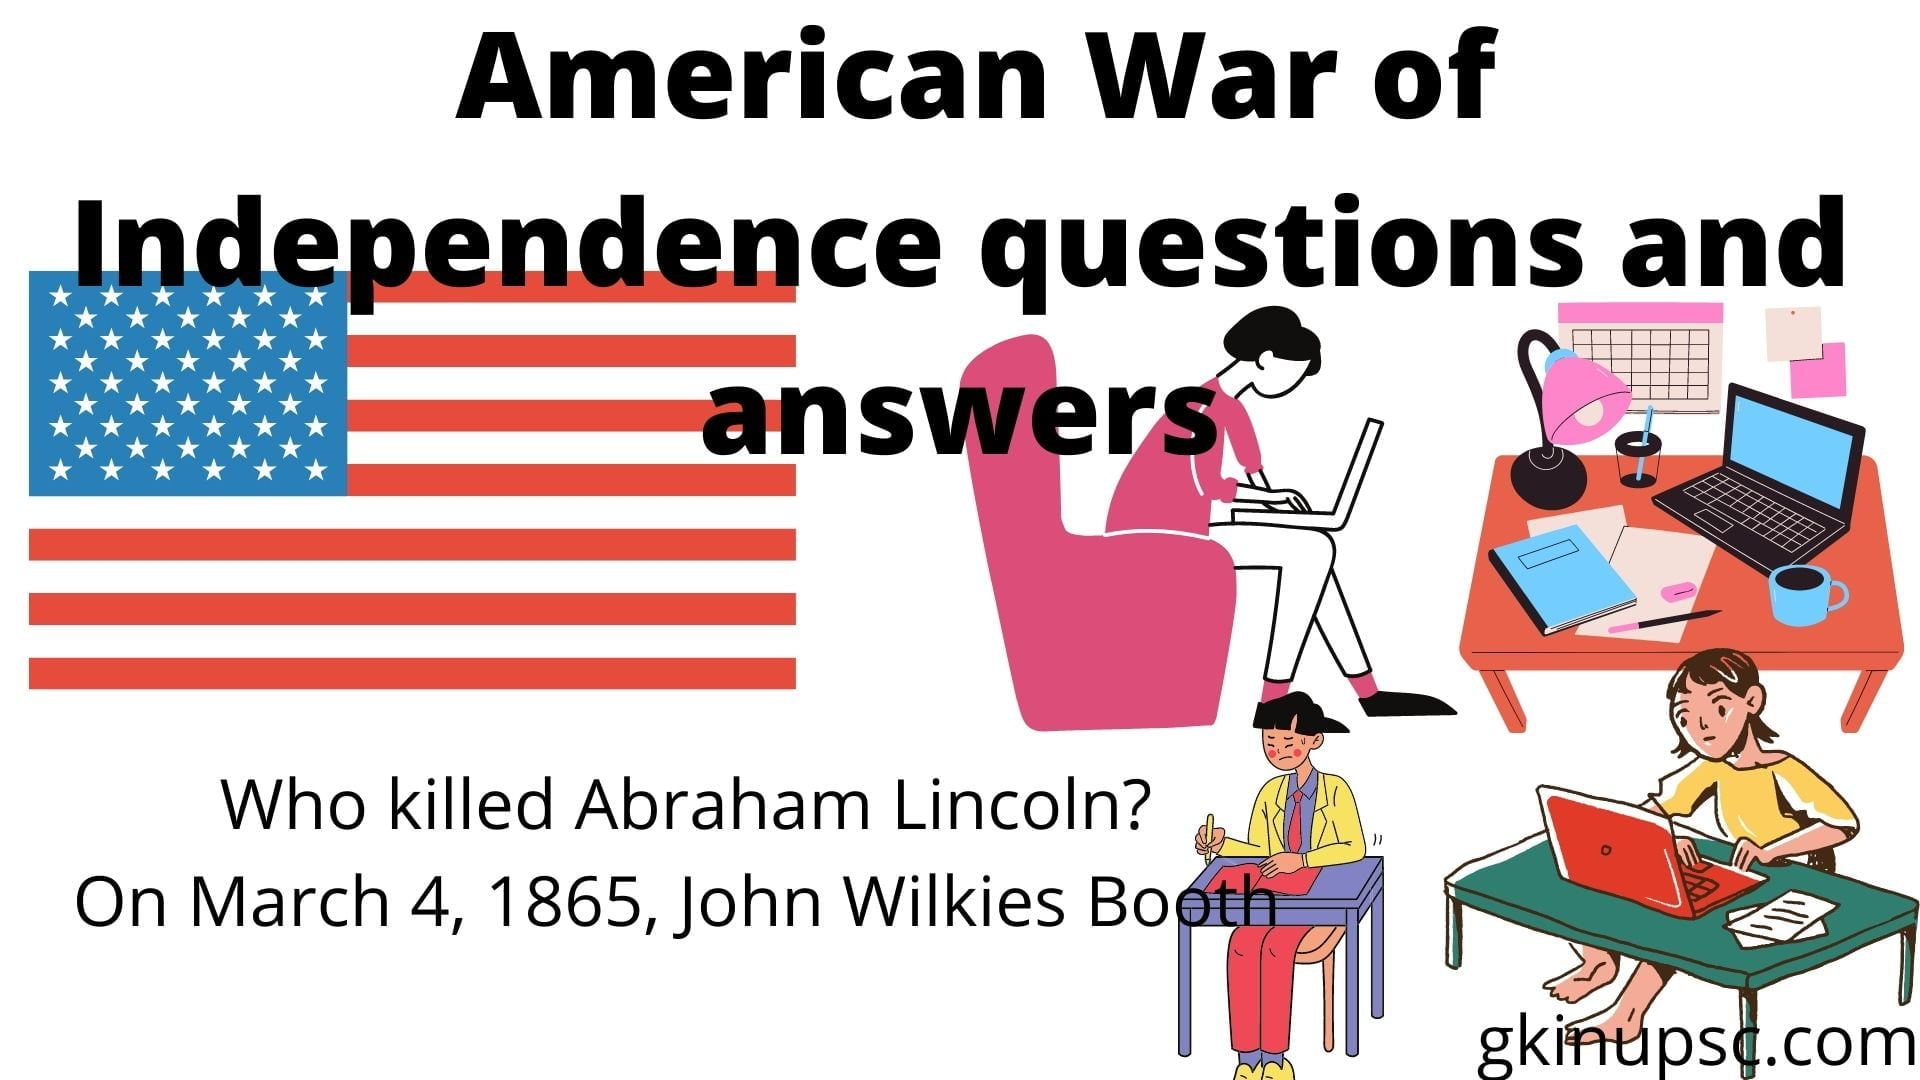 American War of Independence questions and answers